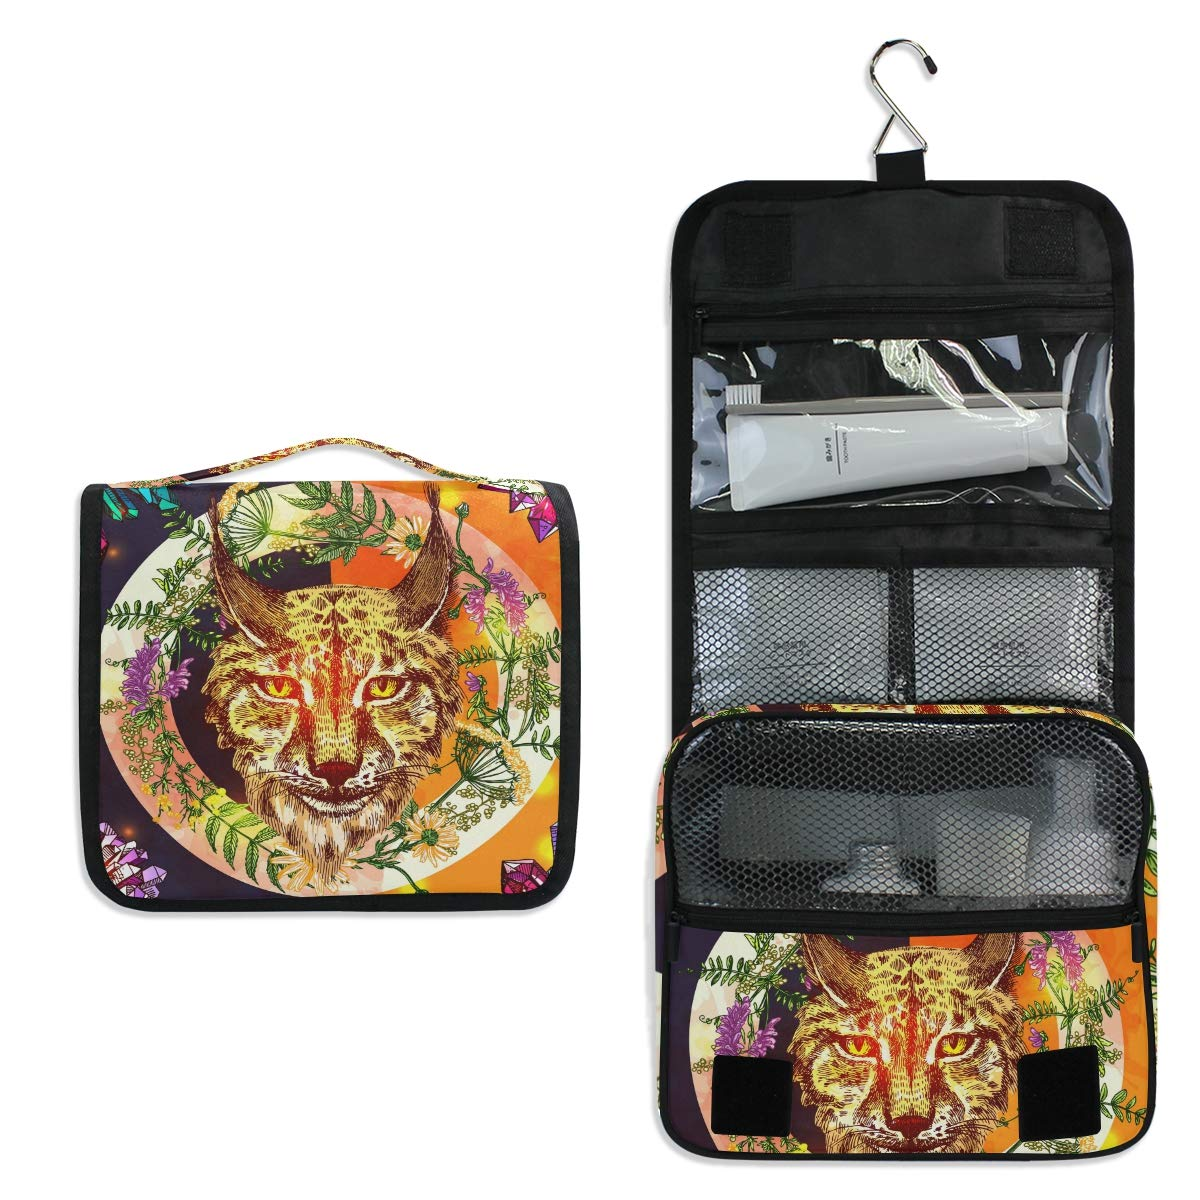 Hanging Travel Toiletry Bag - Illustration With Lynx Waterproof Cosmetic Bag Portable Makeup Pouch for Women Girls Men